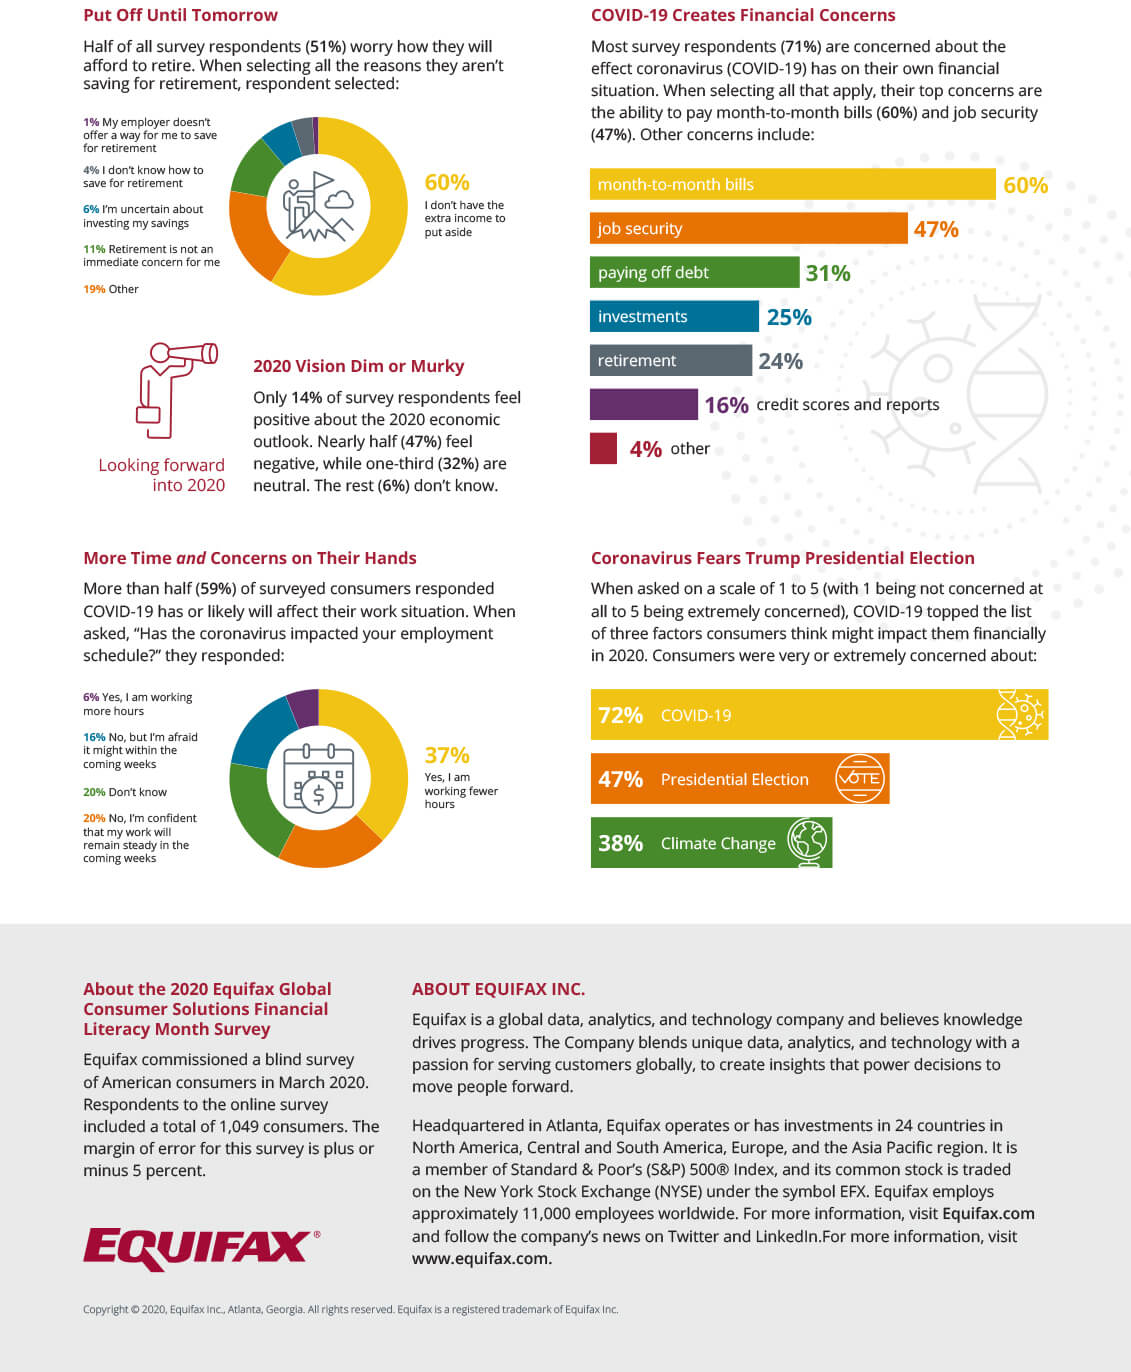 2020 Equifax GCS Financial Literacy Month Survey Results, part 2